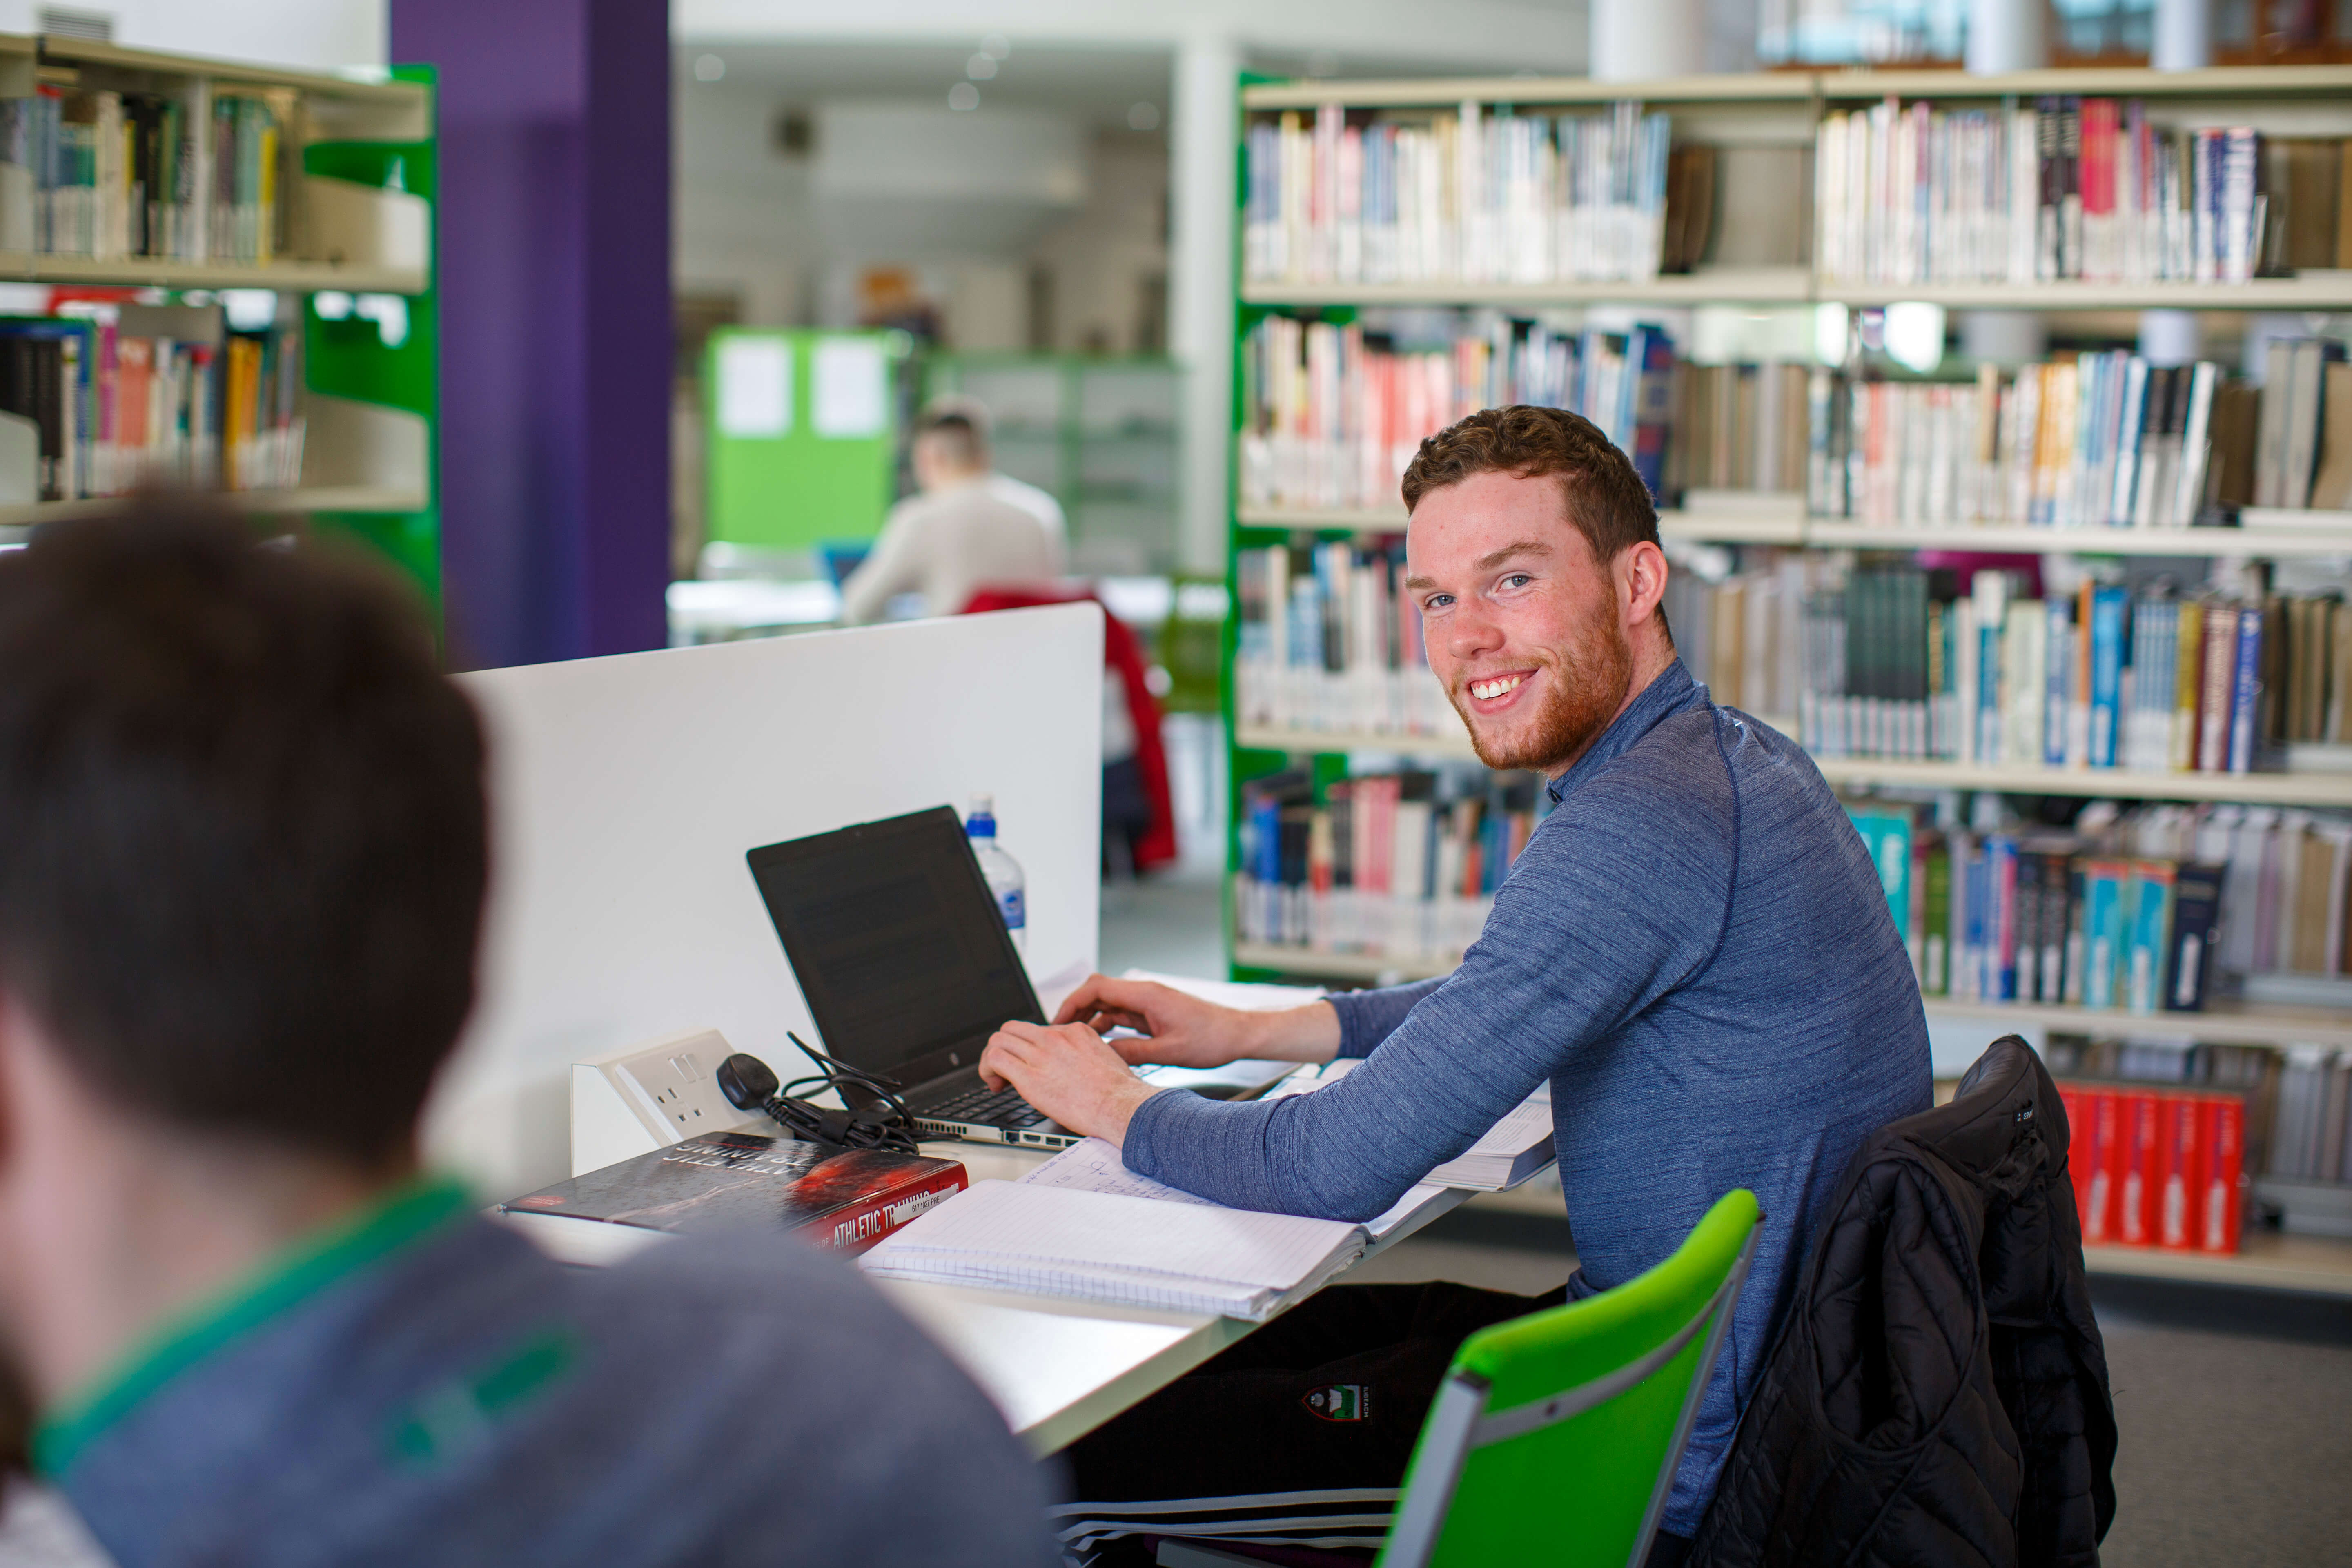 Students in the AIT Library Using Laptops